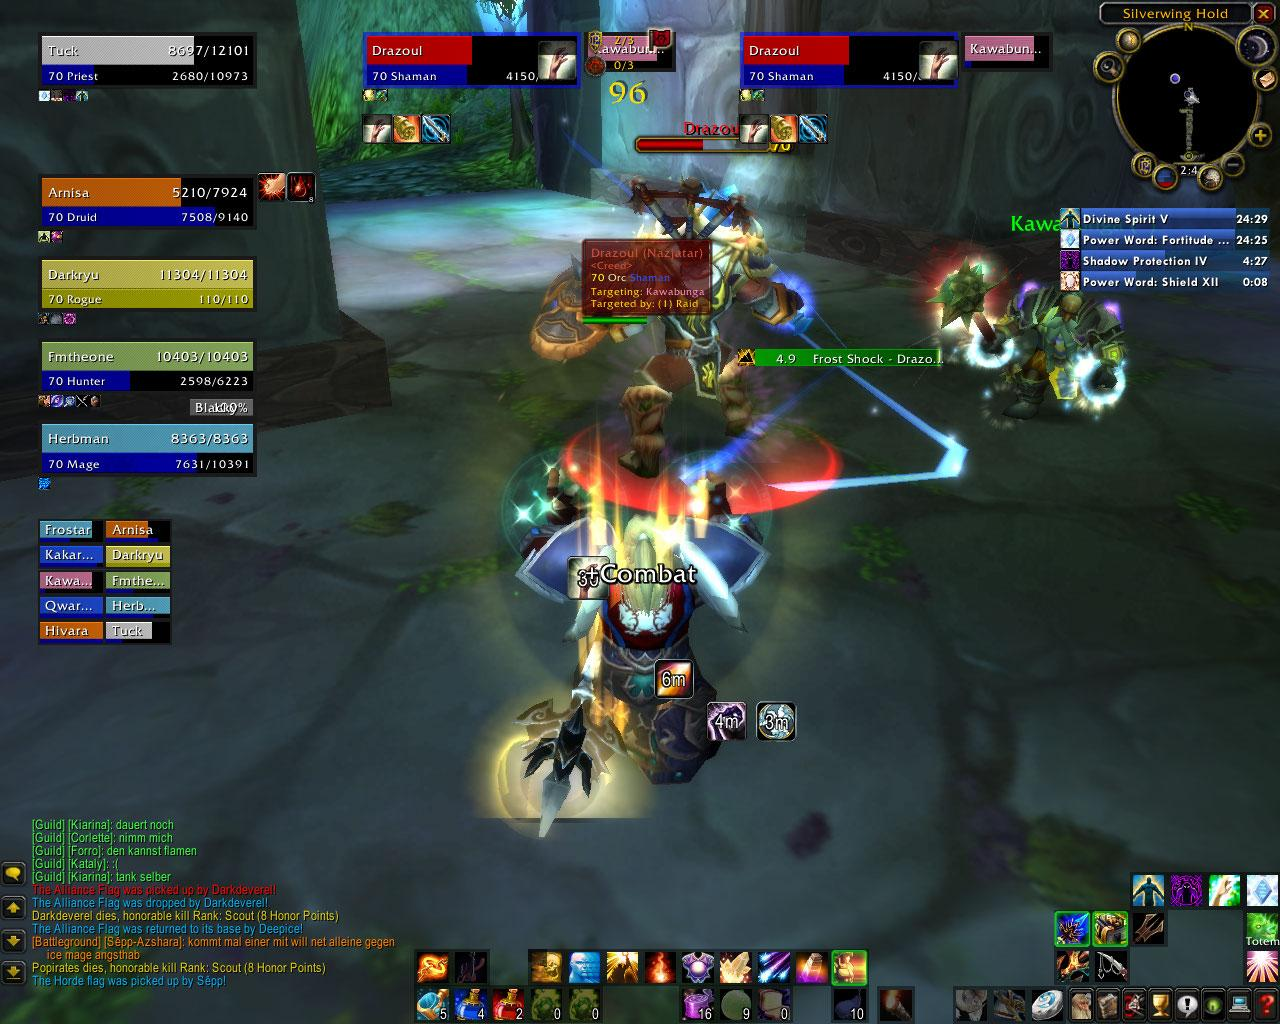 Basic world of warcraft gaming experince guide